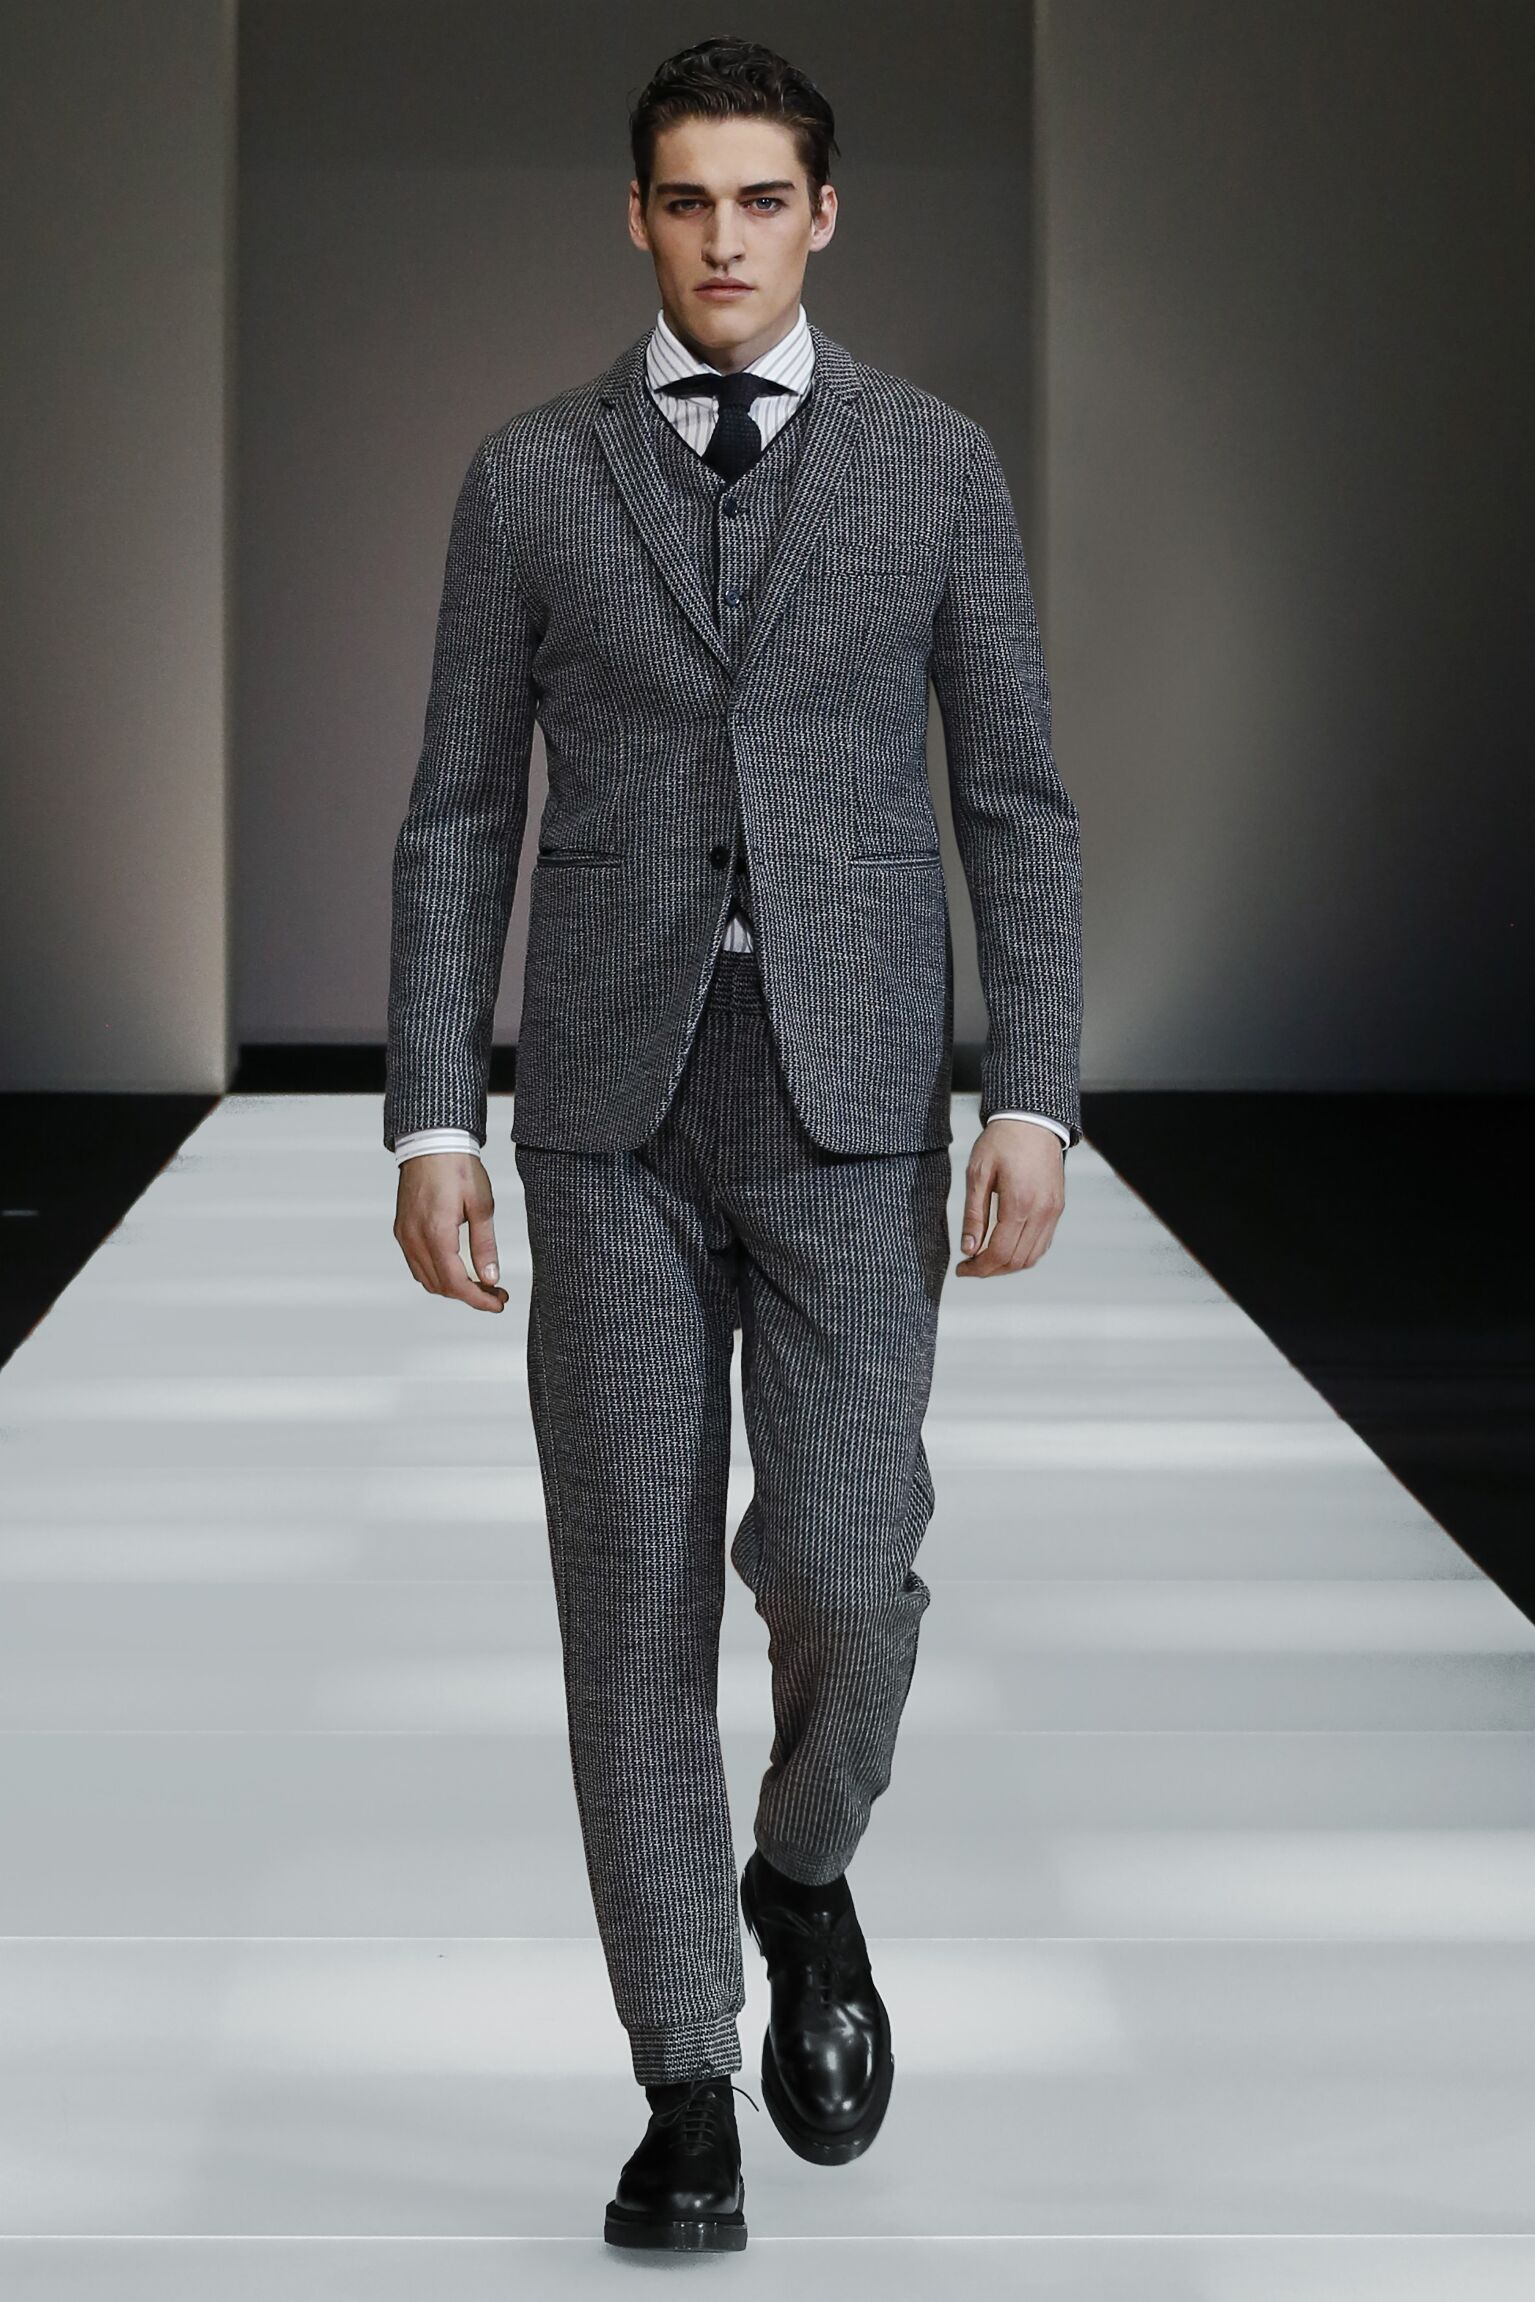 2015 2016 Winter Fashion Trends Emporio Armani Collection